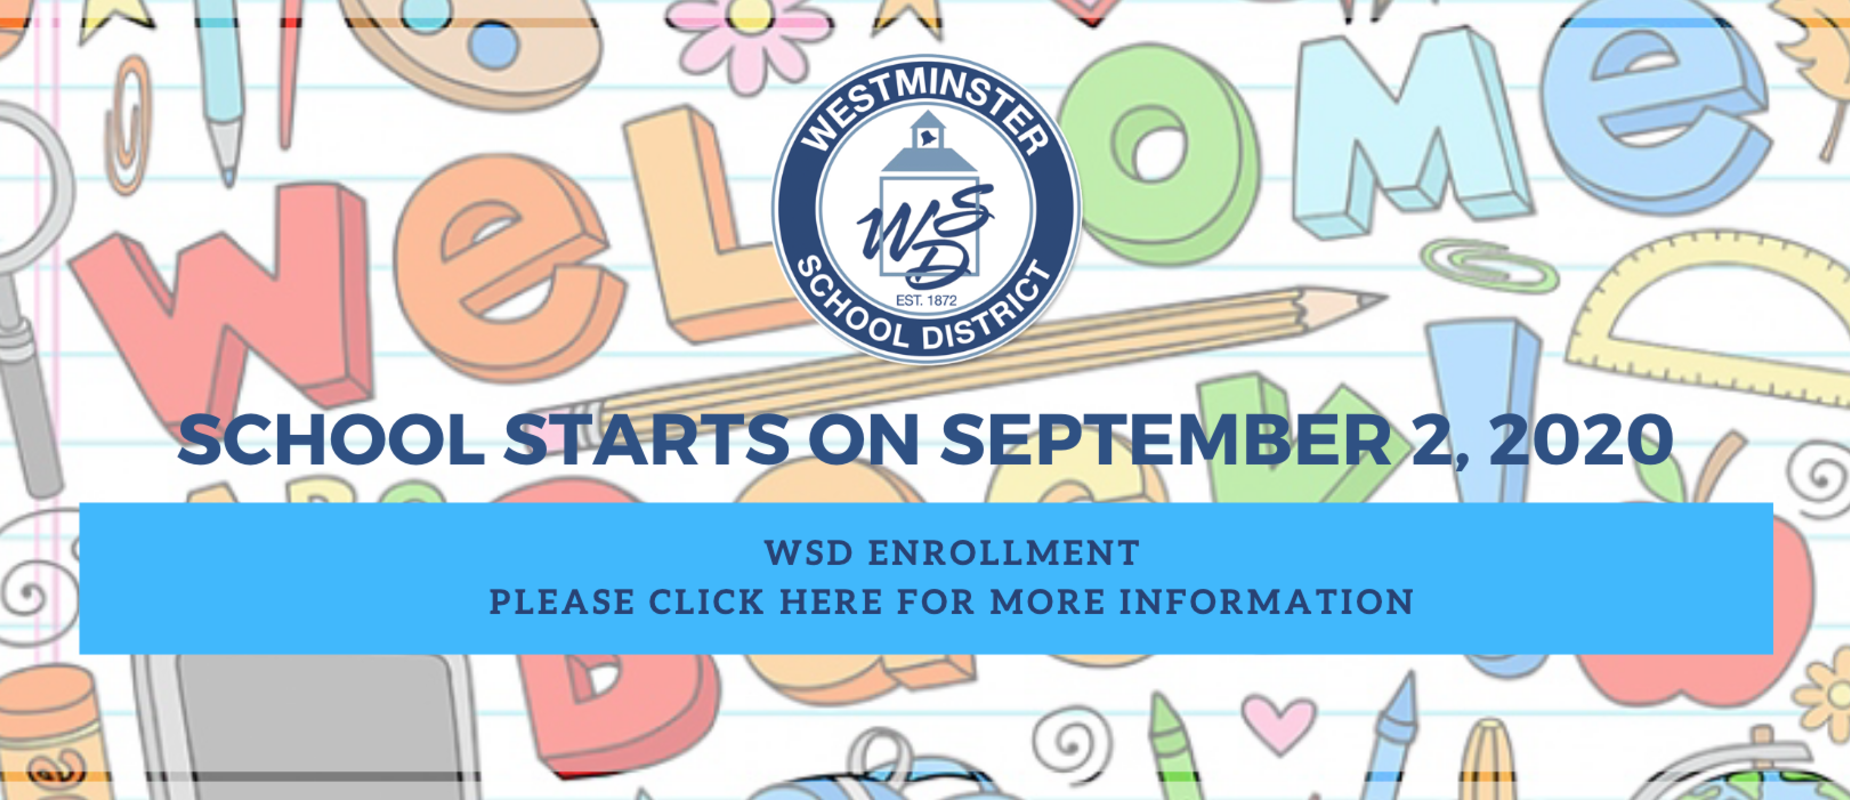 Back to School September 2, 2020.  Enrollment info.